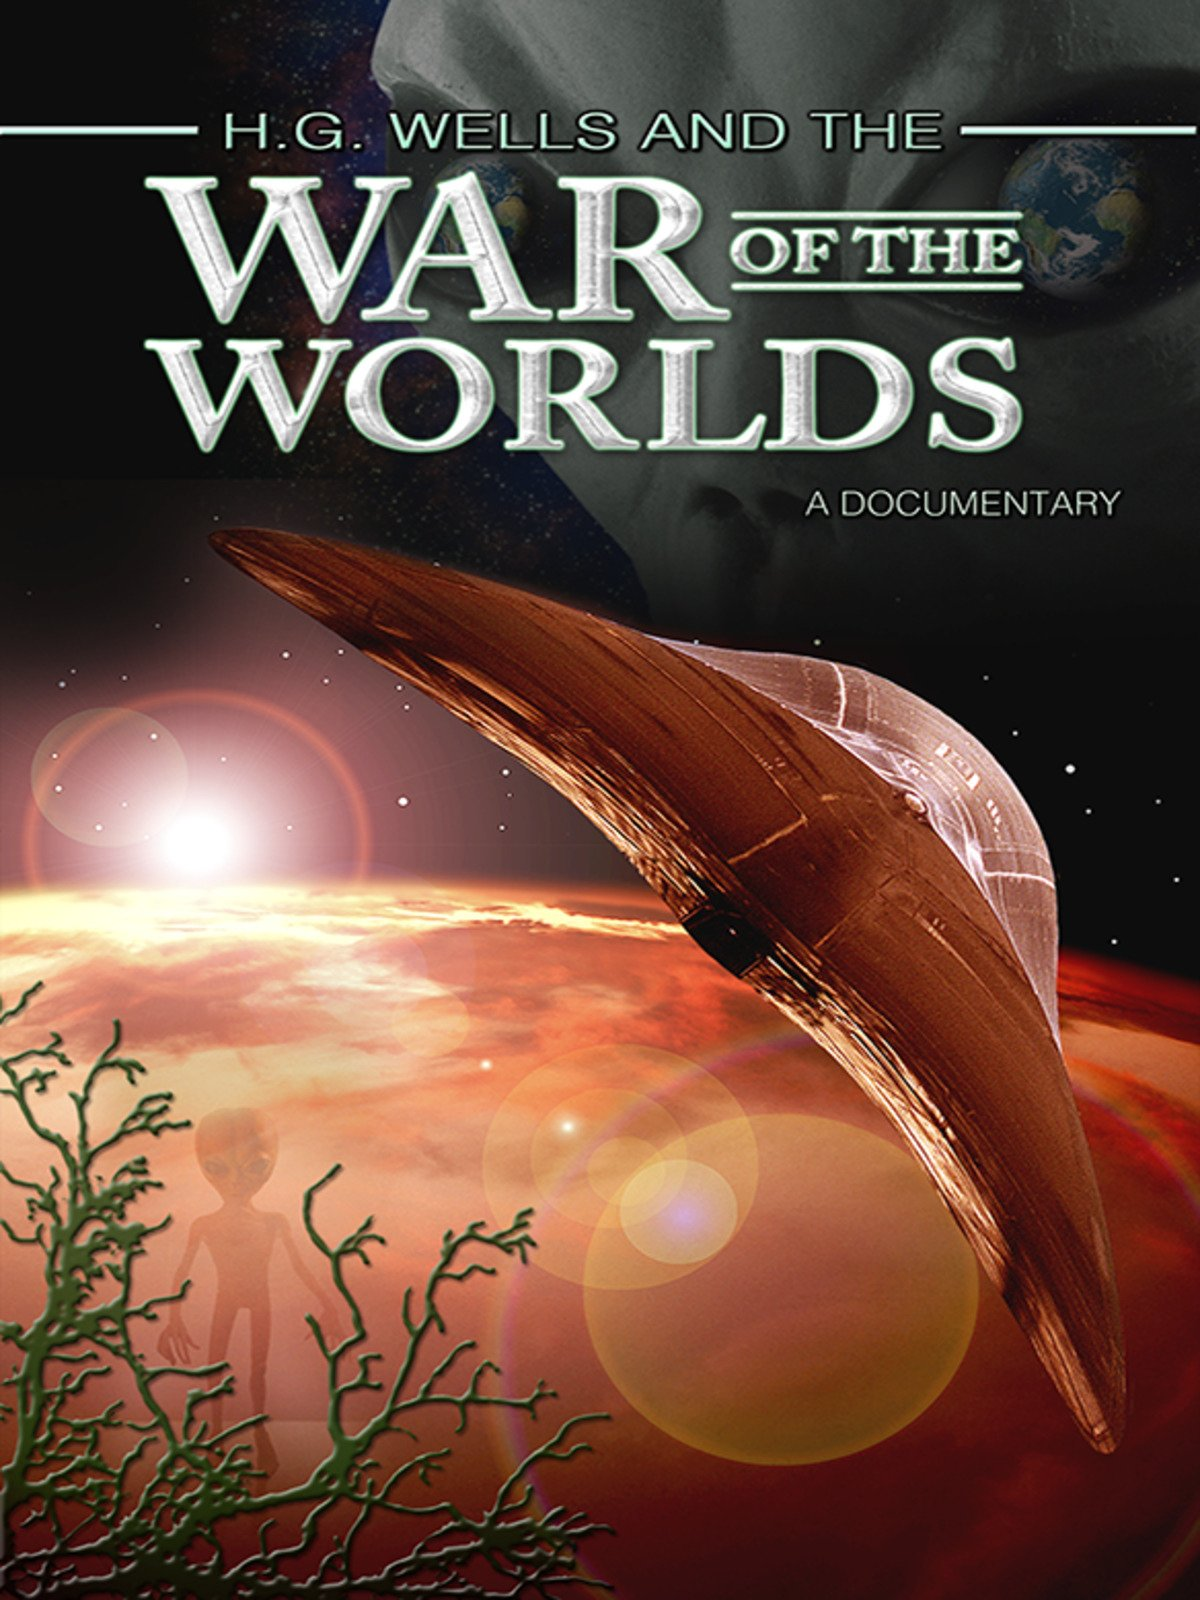 H.G. Wells and the War of the Worlds: A Documentary